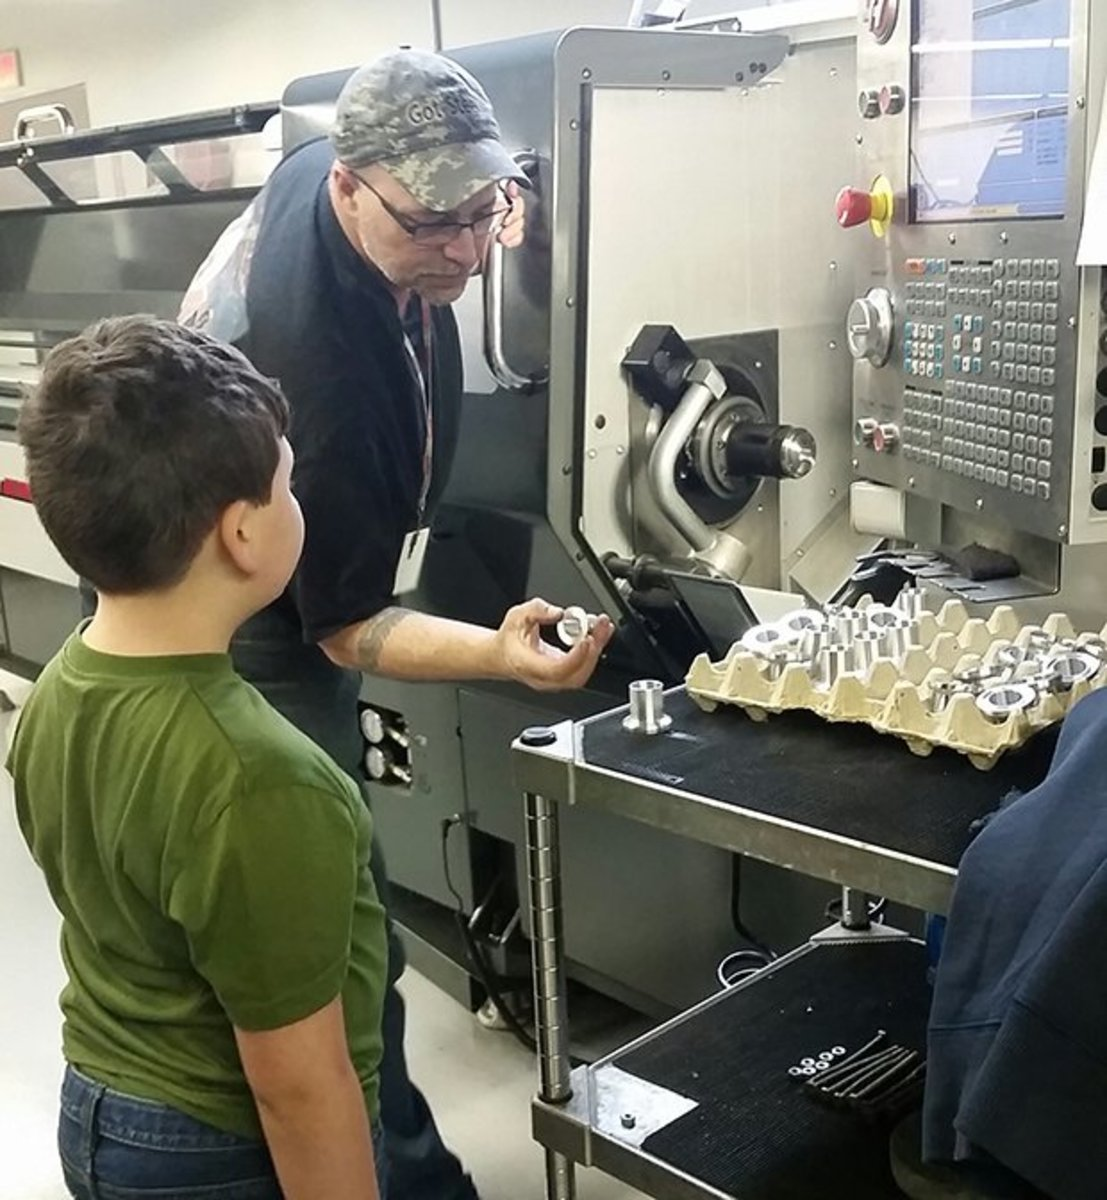 Kyle's son David on a tour of the Borg Design plant in Massachusetts.